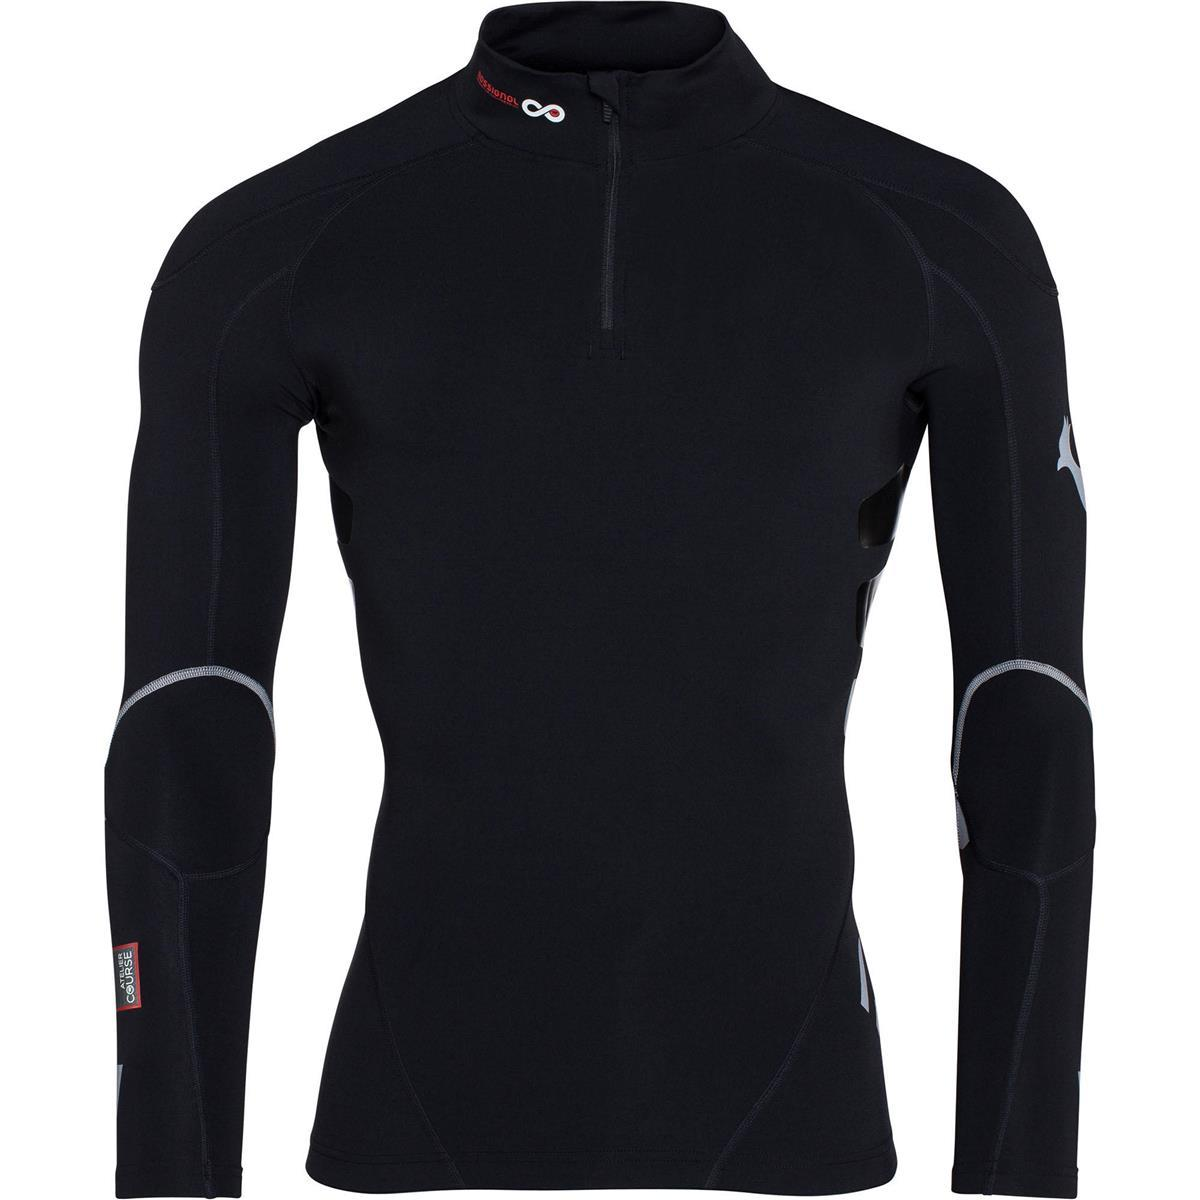 Rossignol Infini Compression Race Top